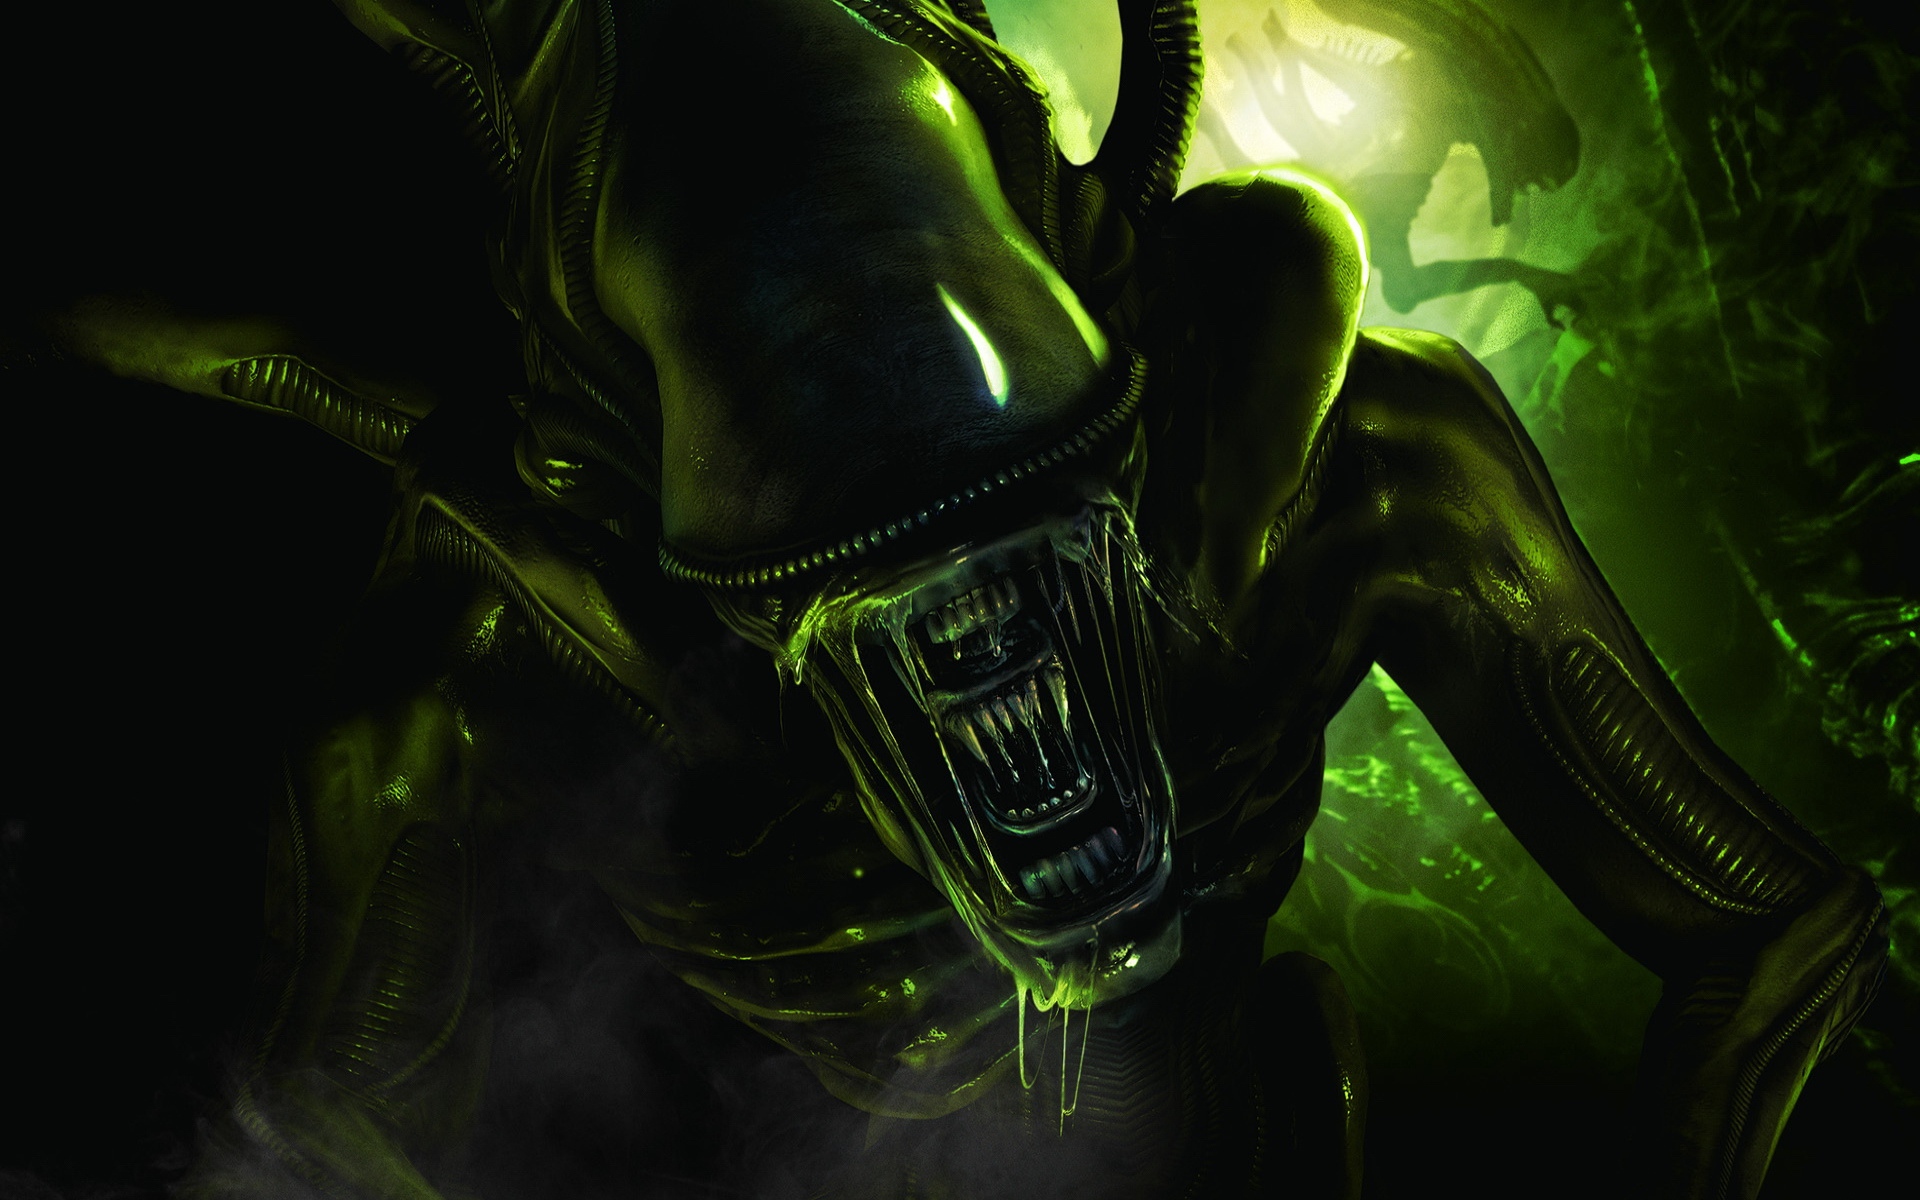 Alien Desktop Wallpapers FREE on Latorocom 1920x1200